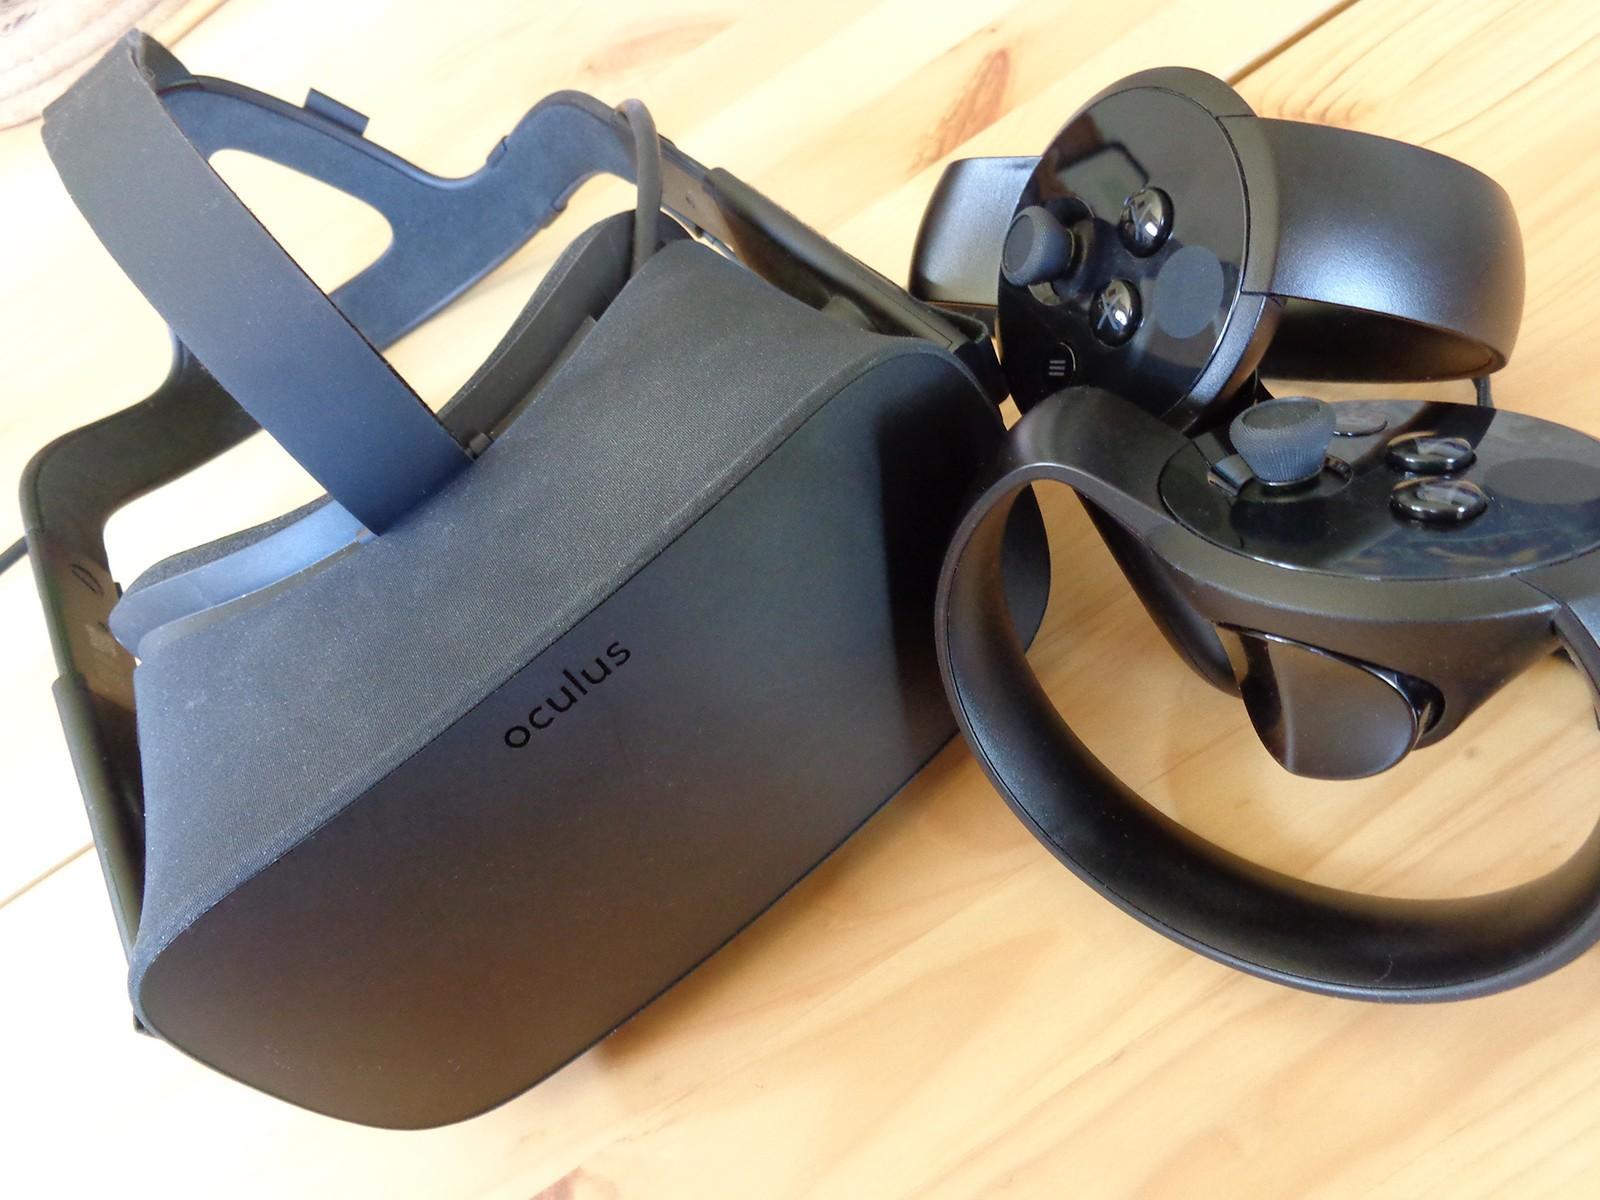 How to fix the most common Oculus Rift error codes